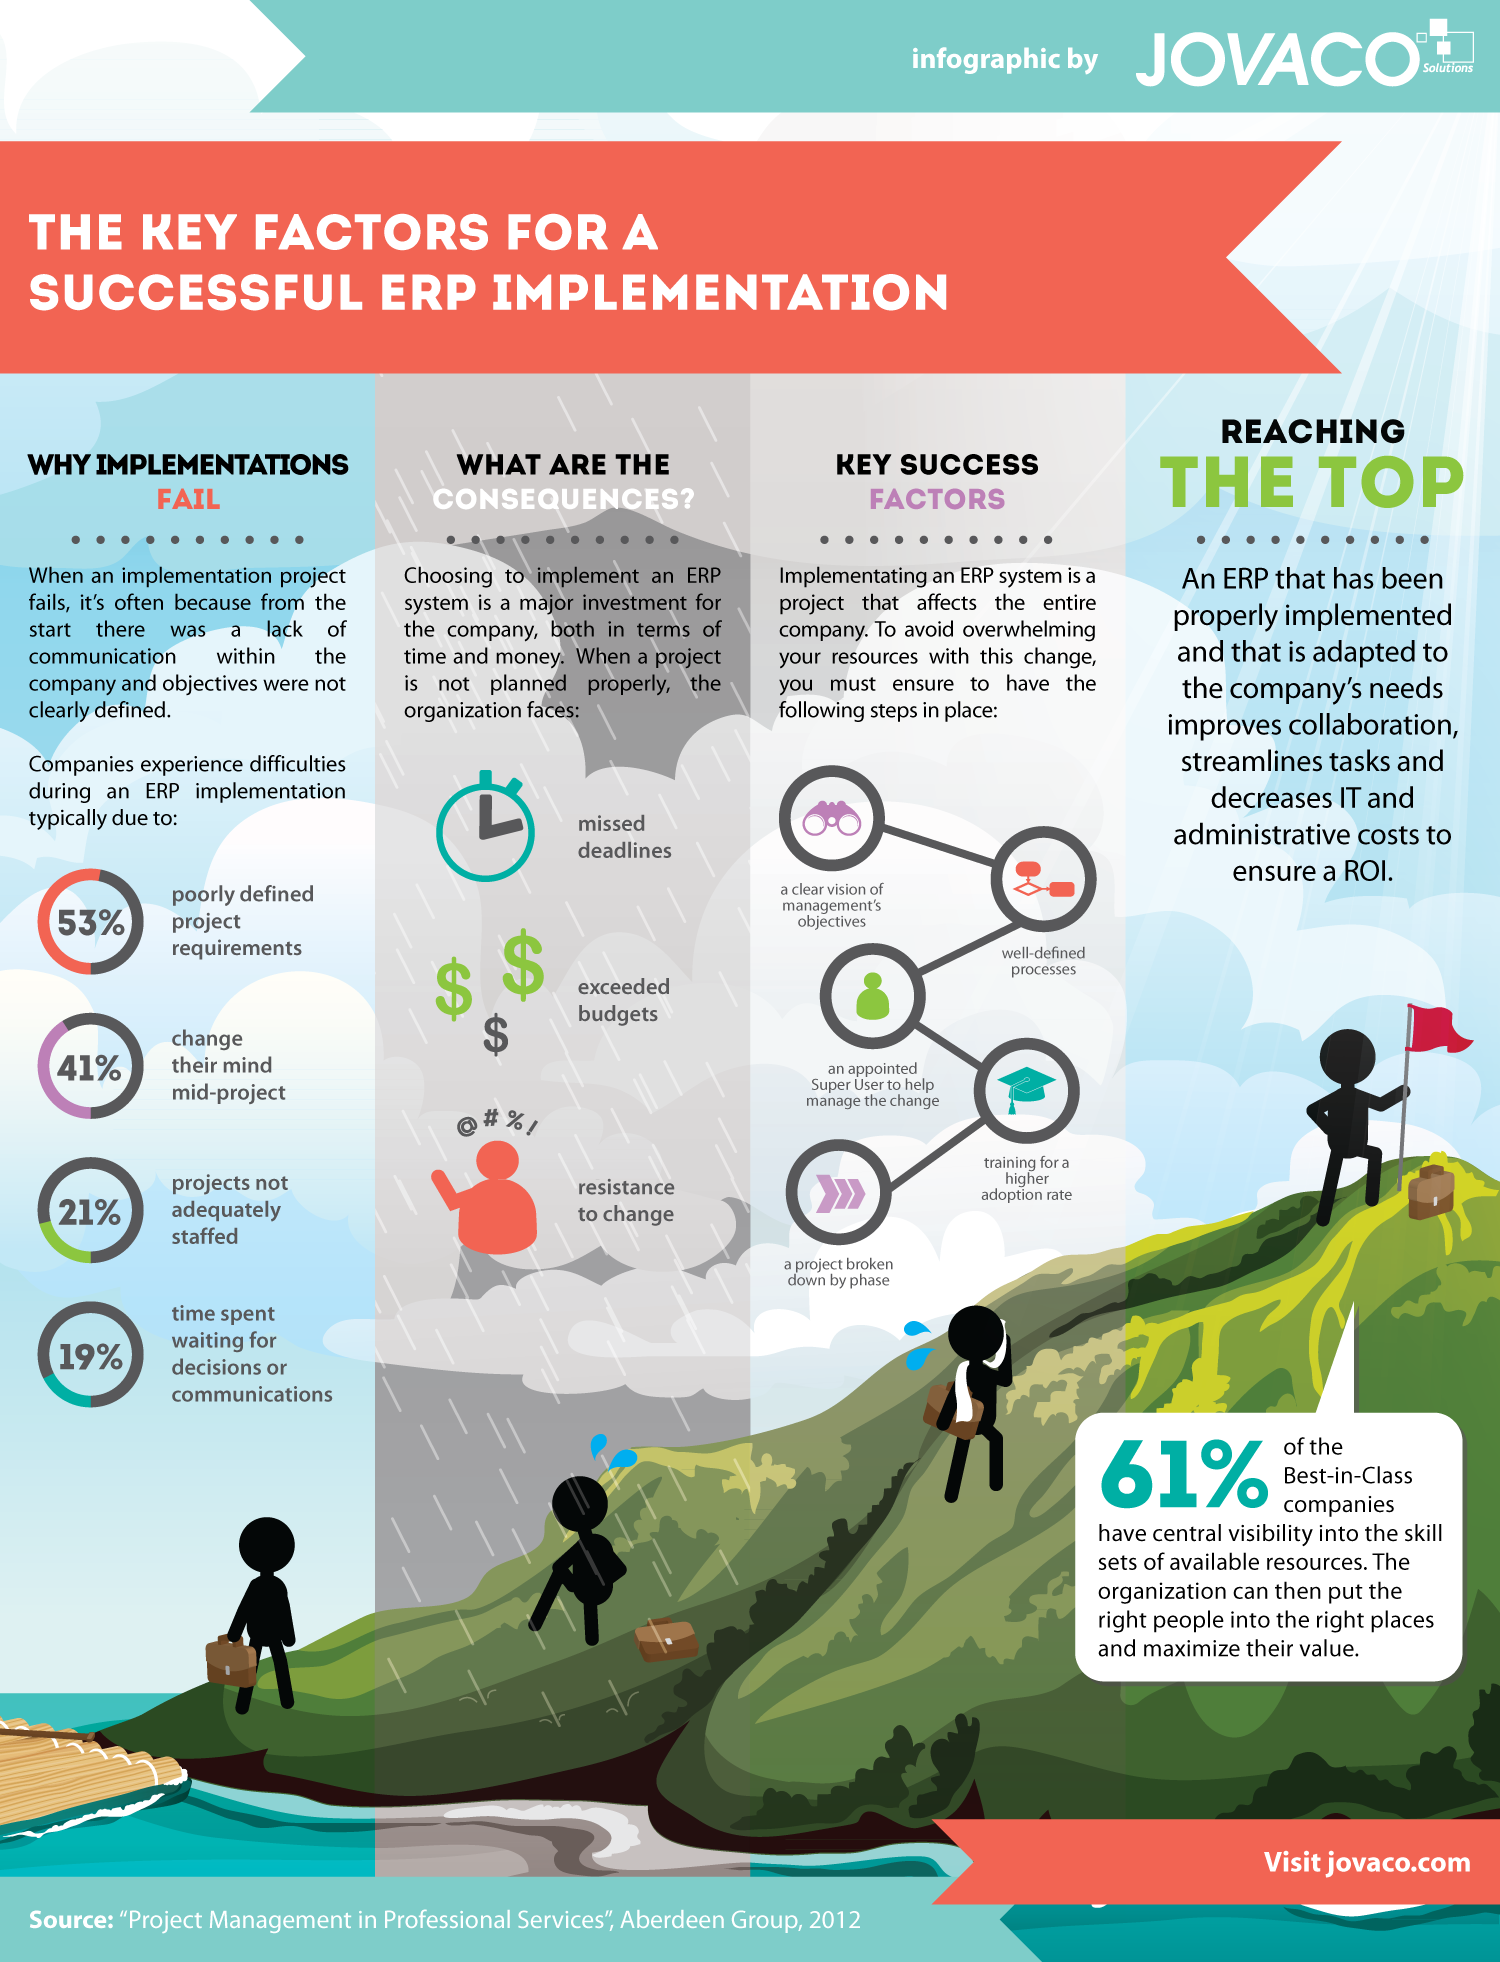 jovaco-solutions-infographic-success-factors-implementation-erp